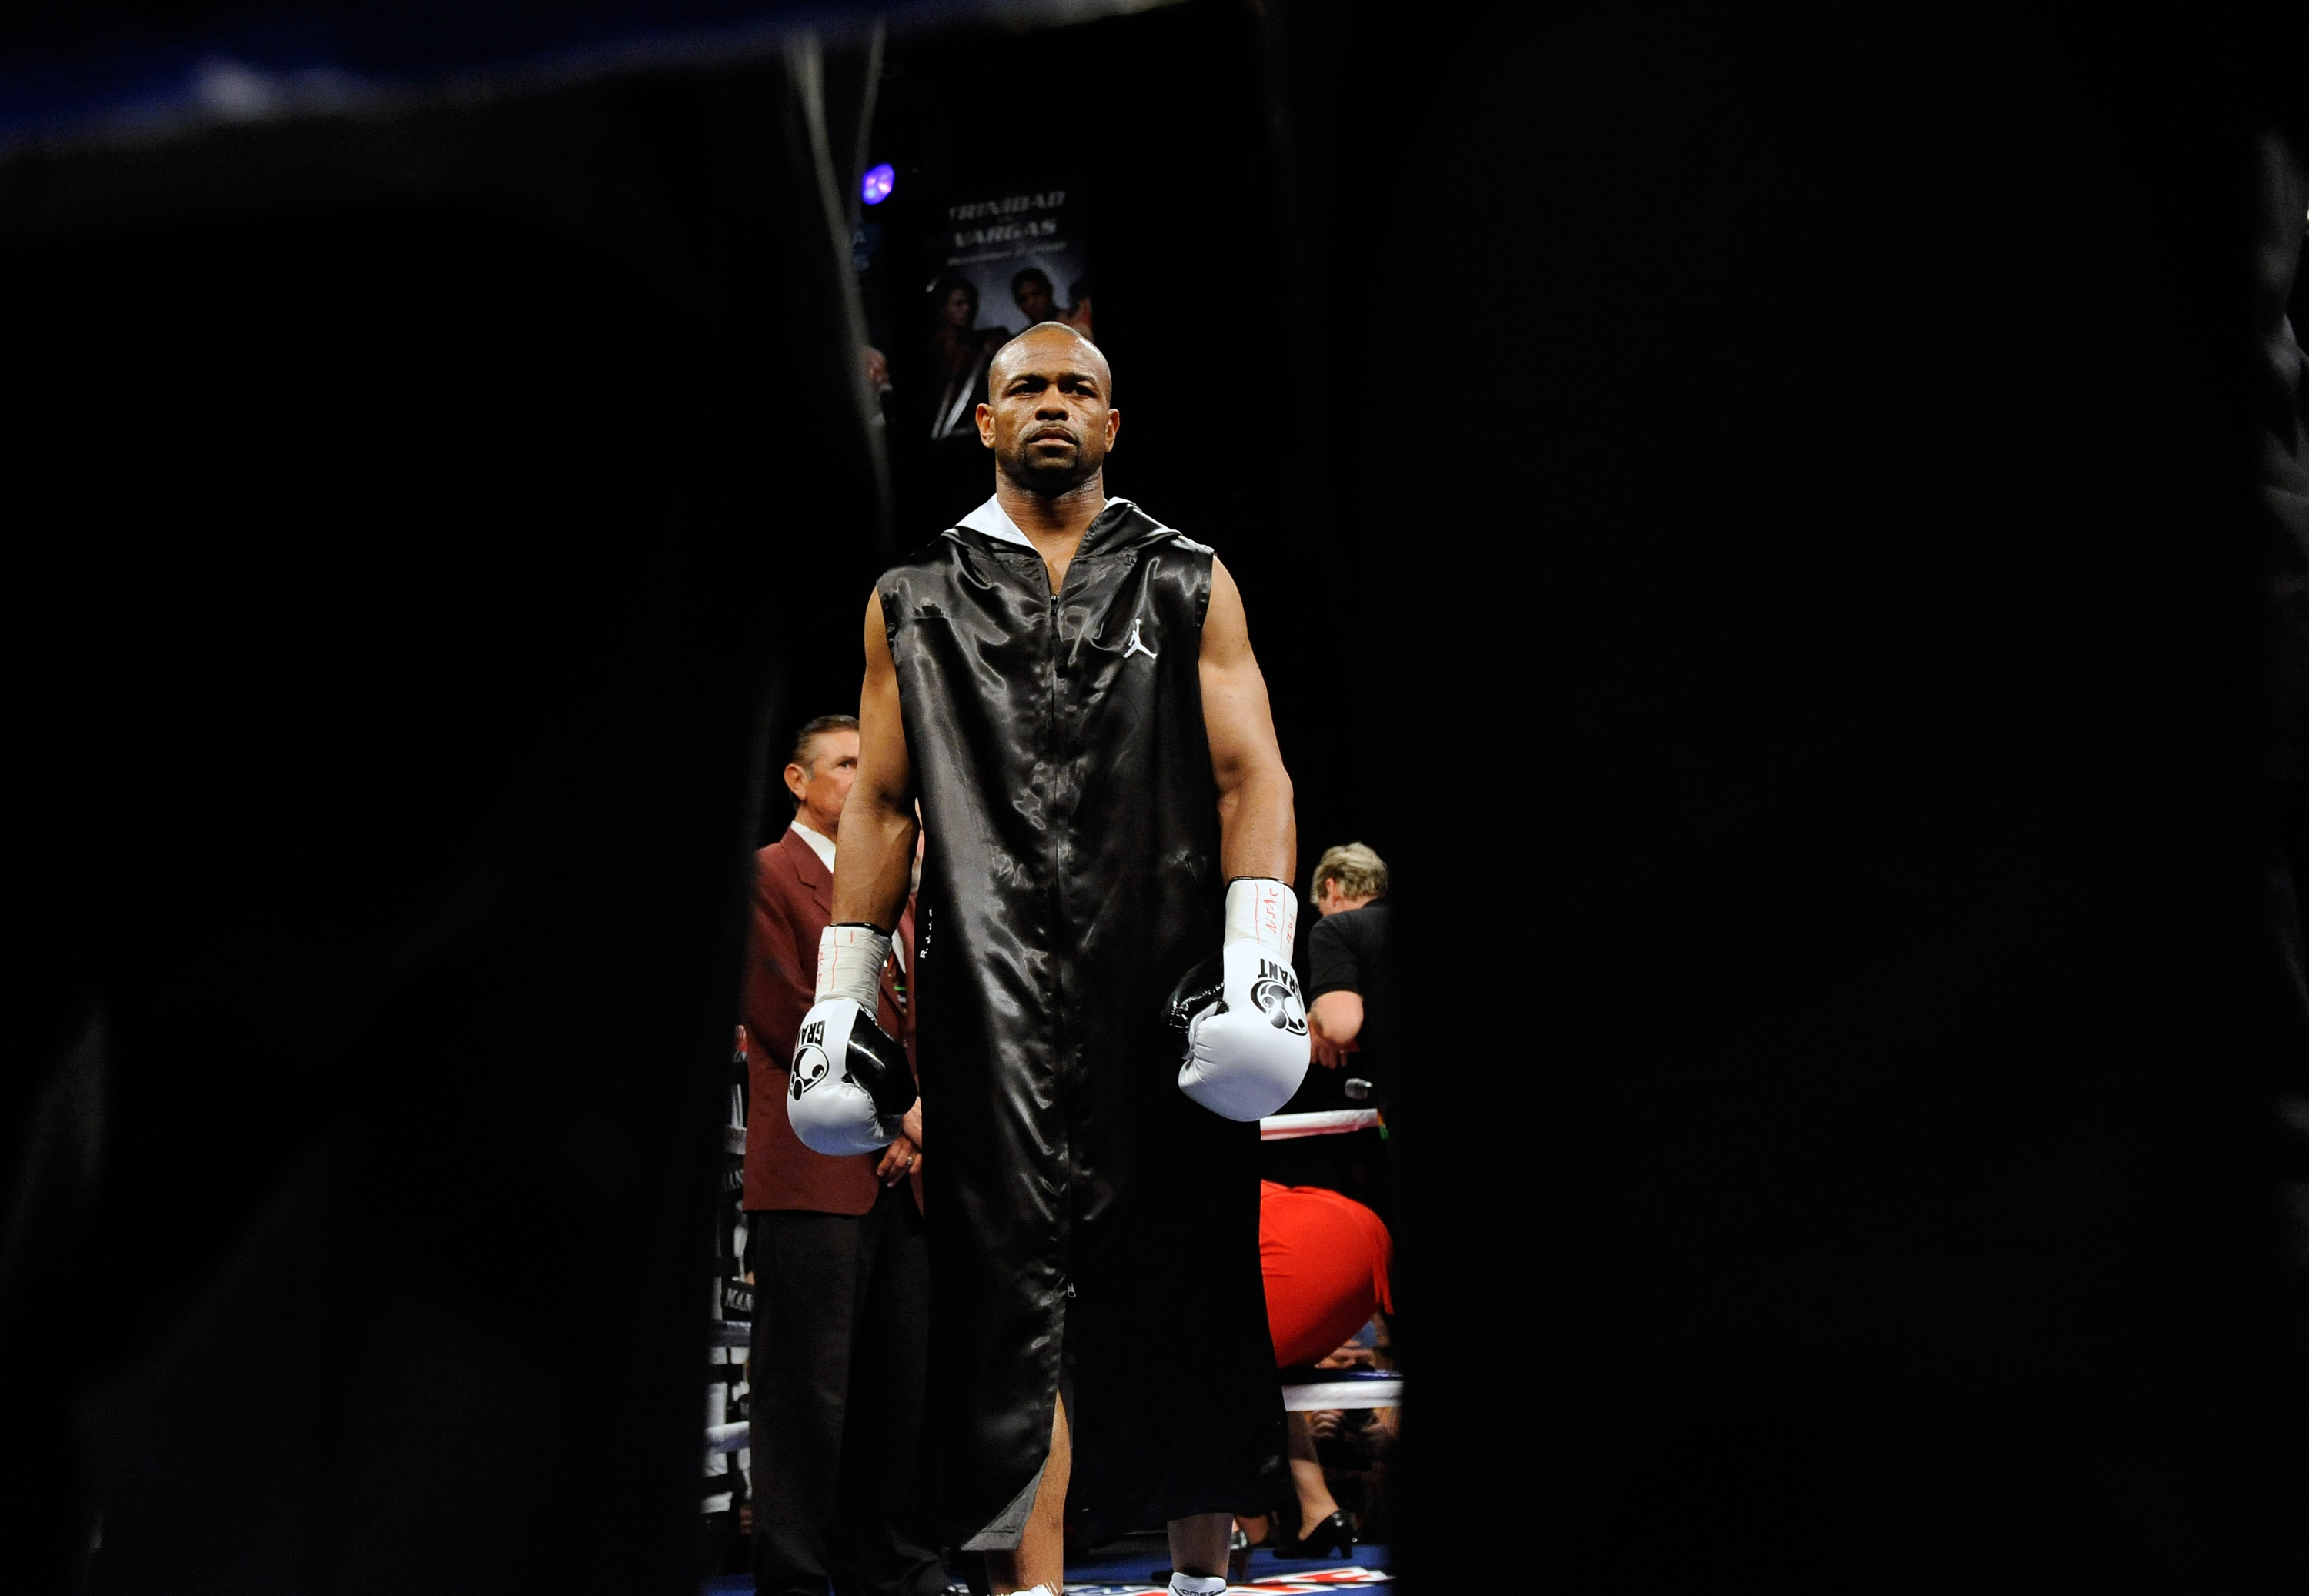 LAS VEGAS - APRIL 03:  Roy Jones Jr. appears in the ring before his light heavyweight bout against Bernard Hopkins at the Mandalay Bay Events Center April 3, 2010 in Las Vegas, Nevada. Hopkins won by unanimous decision.  (Photo by Ethan Miller/Getty Image